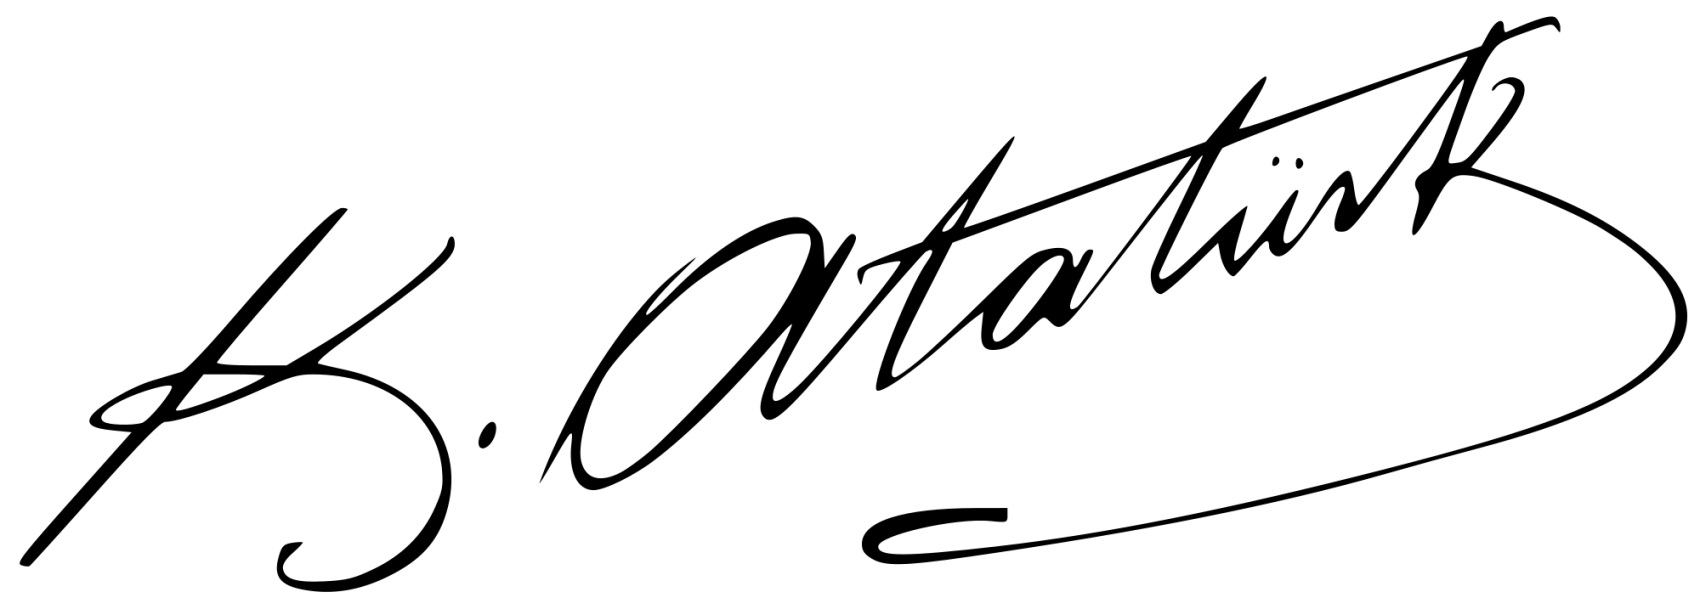 The official signature of Mustafa Kemal Atatürk, designed by Hagop Çerçiyan in 1934